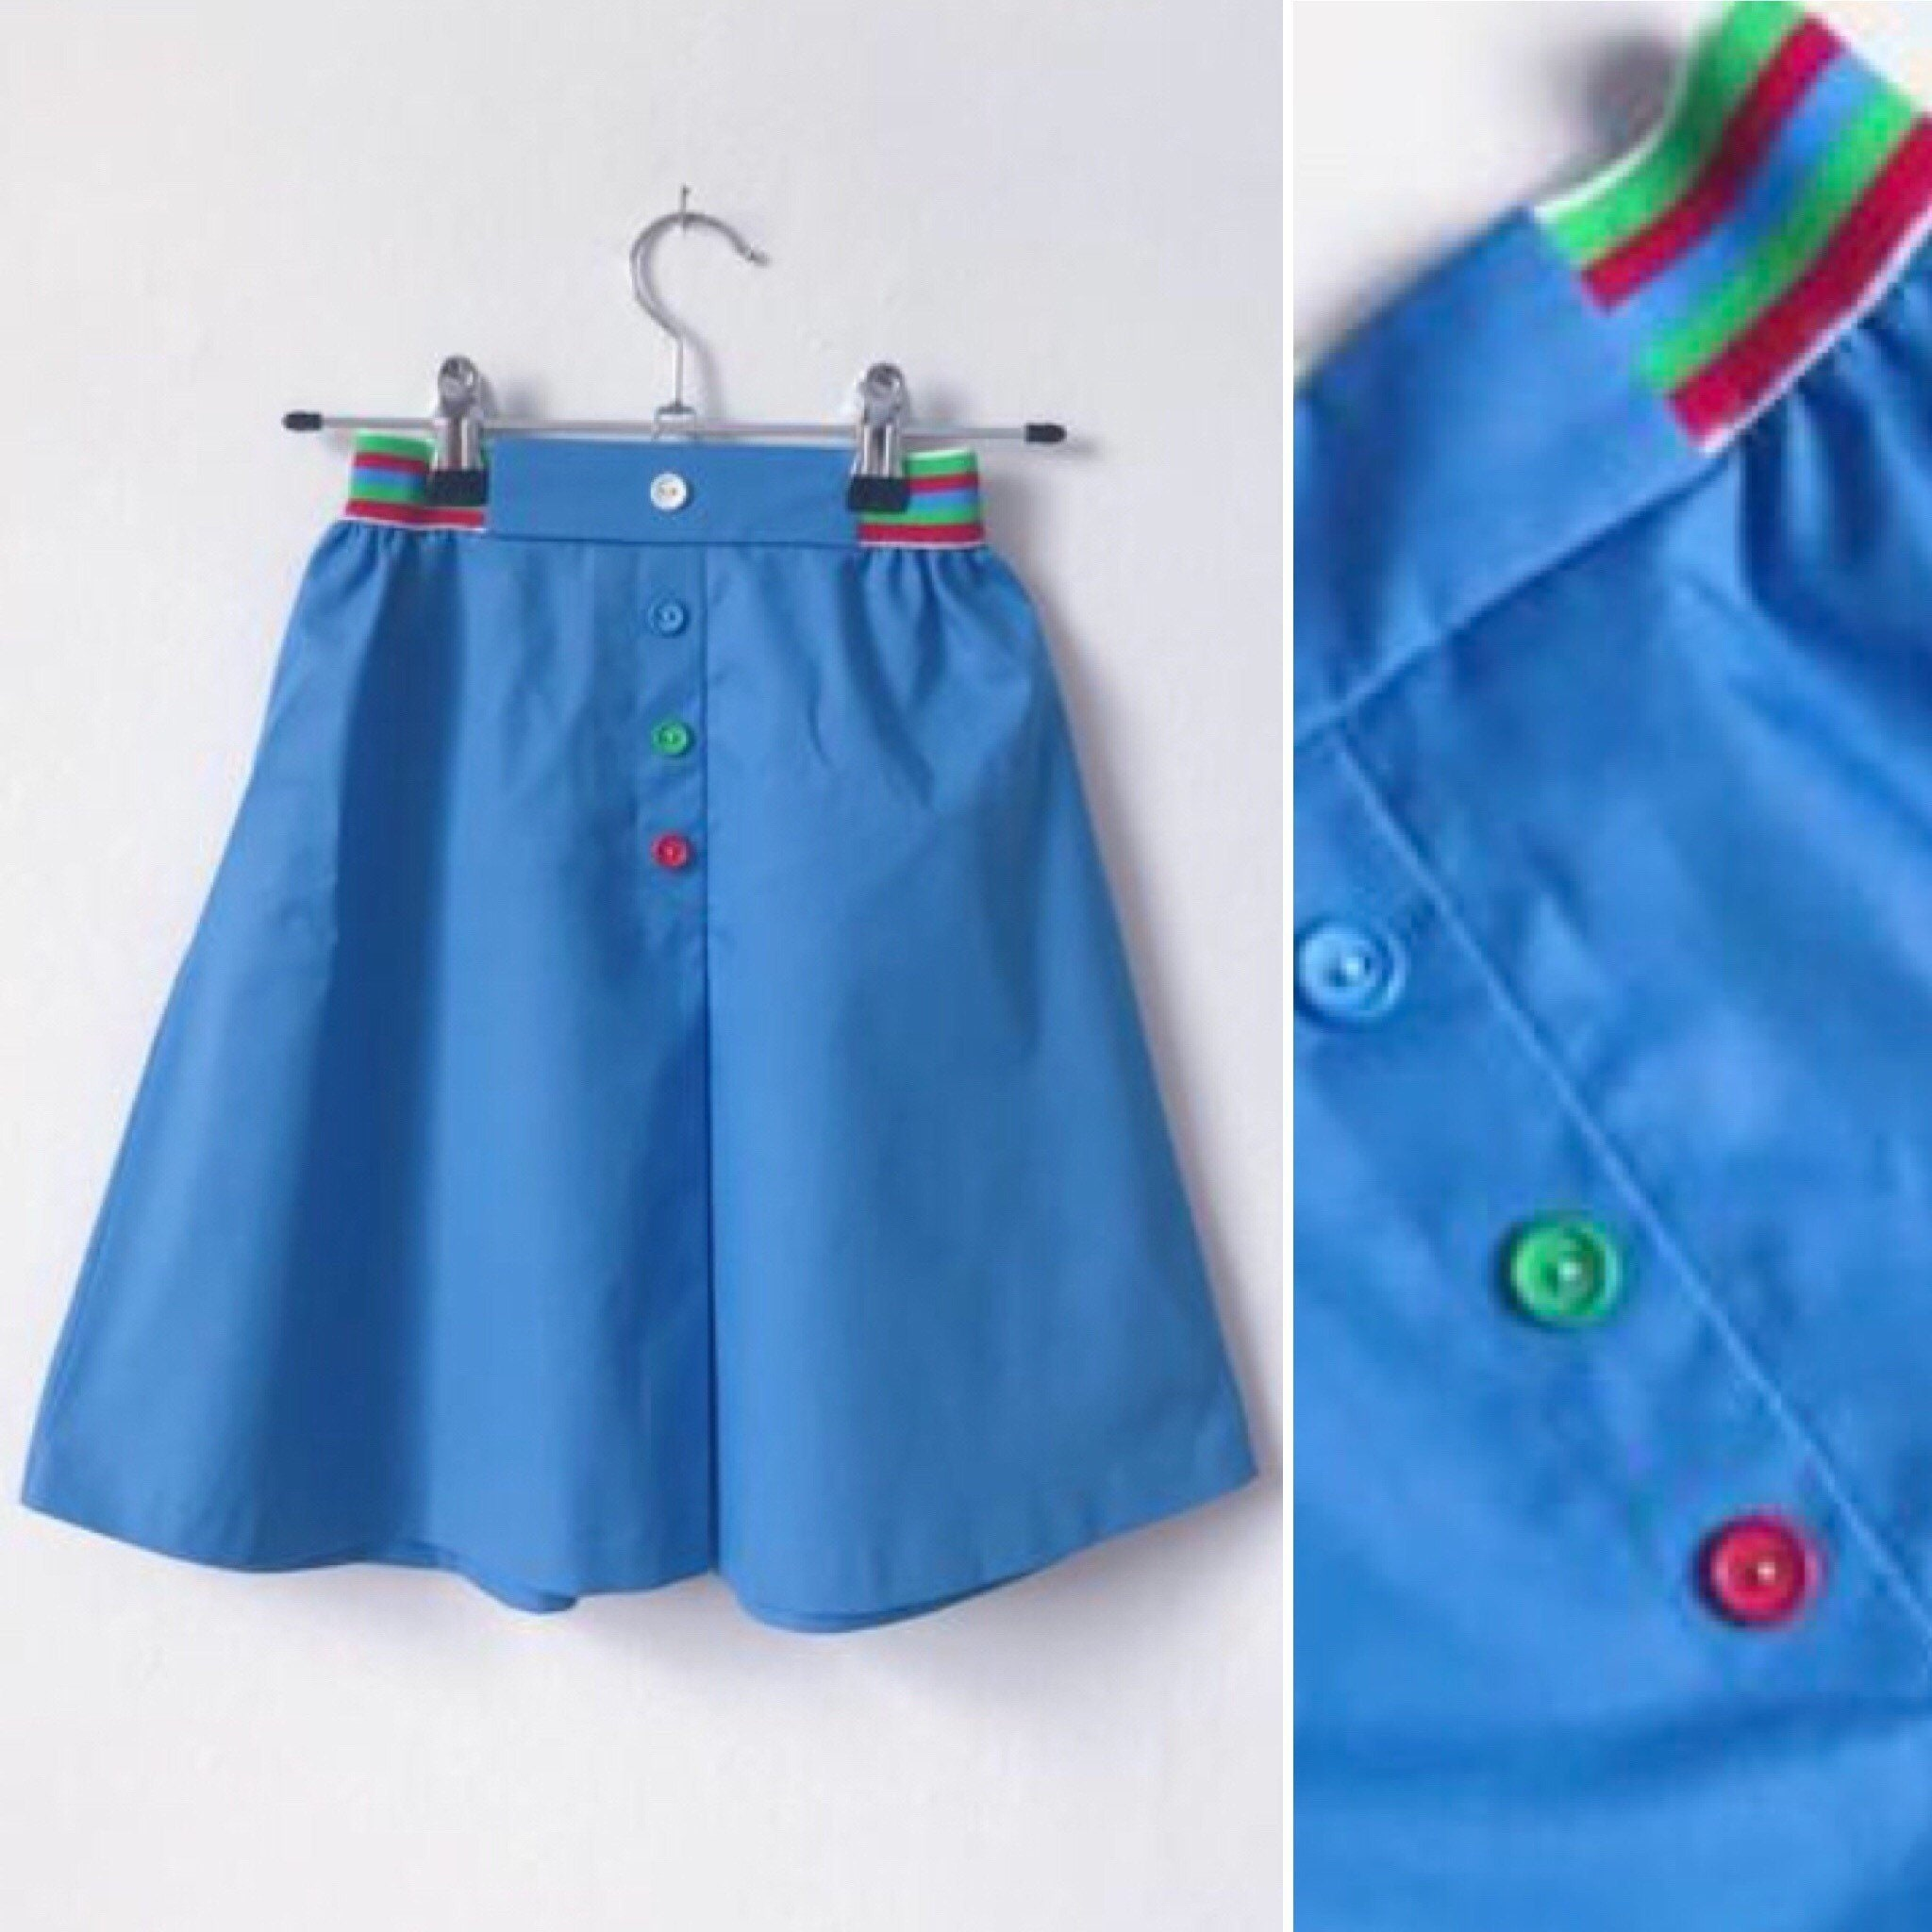 1970s vintage Mothercare girls skirt, blue with rainbow elsstic waist buttons, vintage childrens clothing approx age 8 years age 9 years